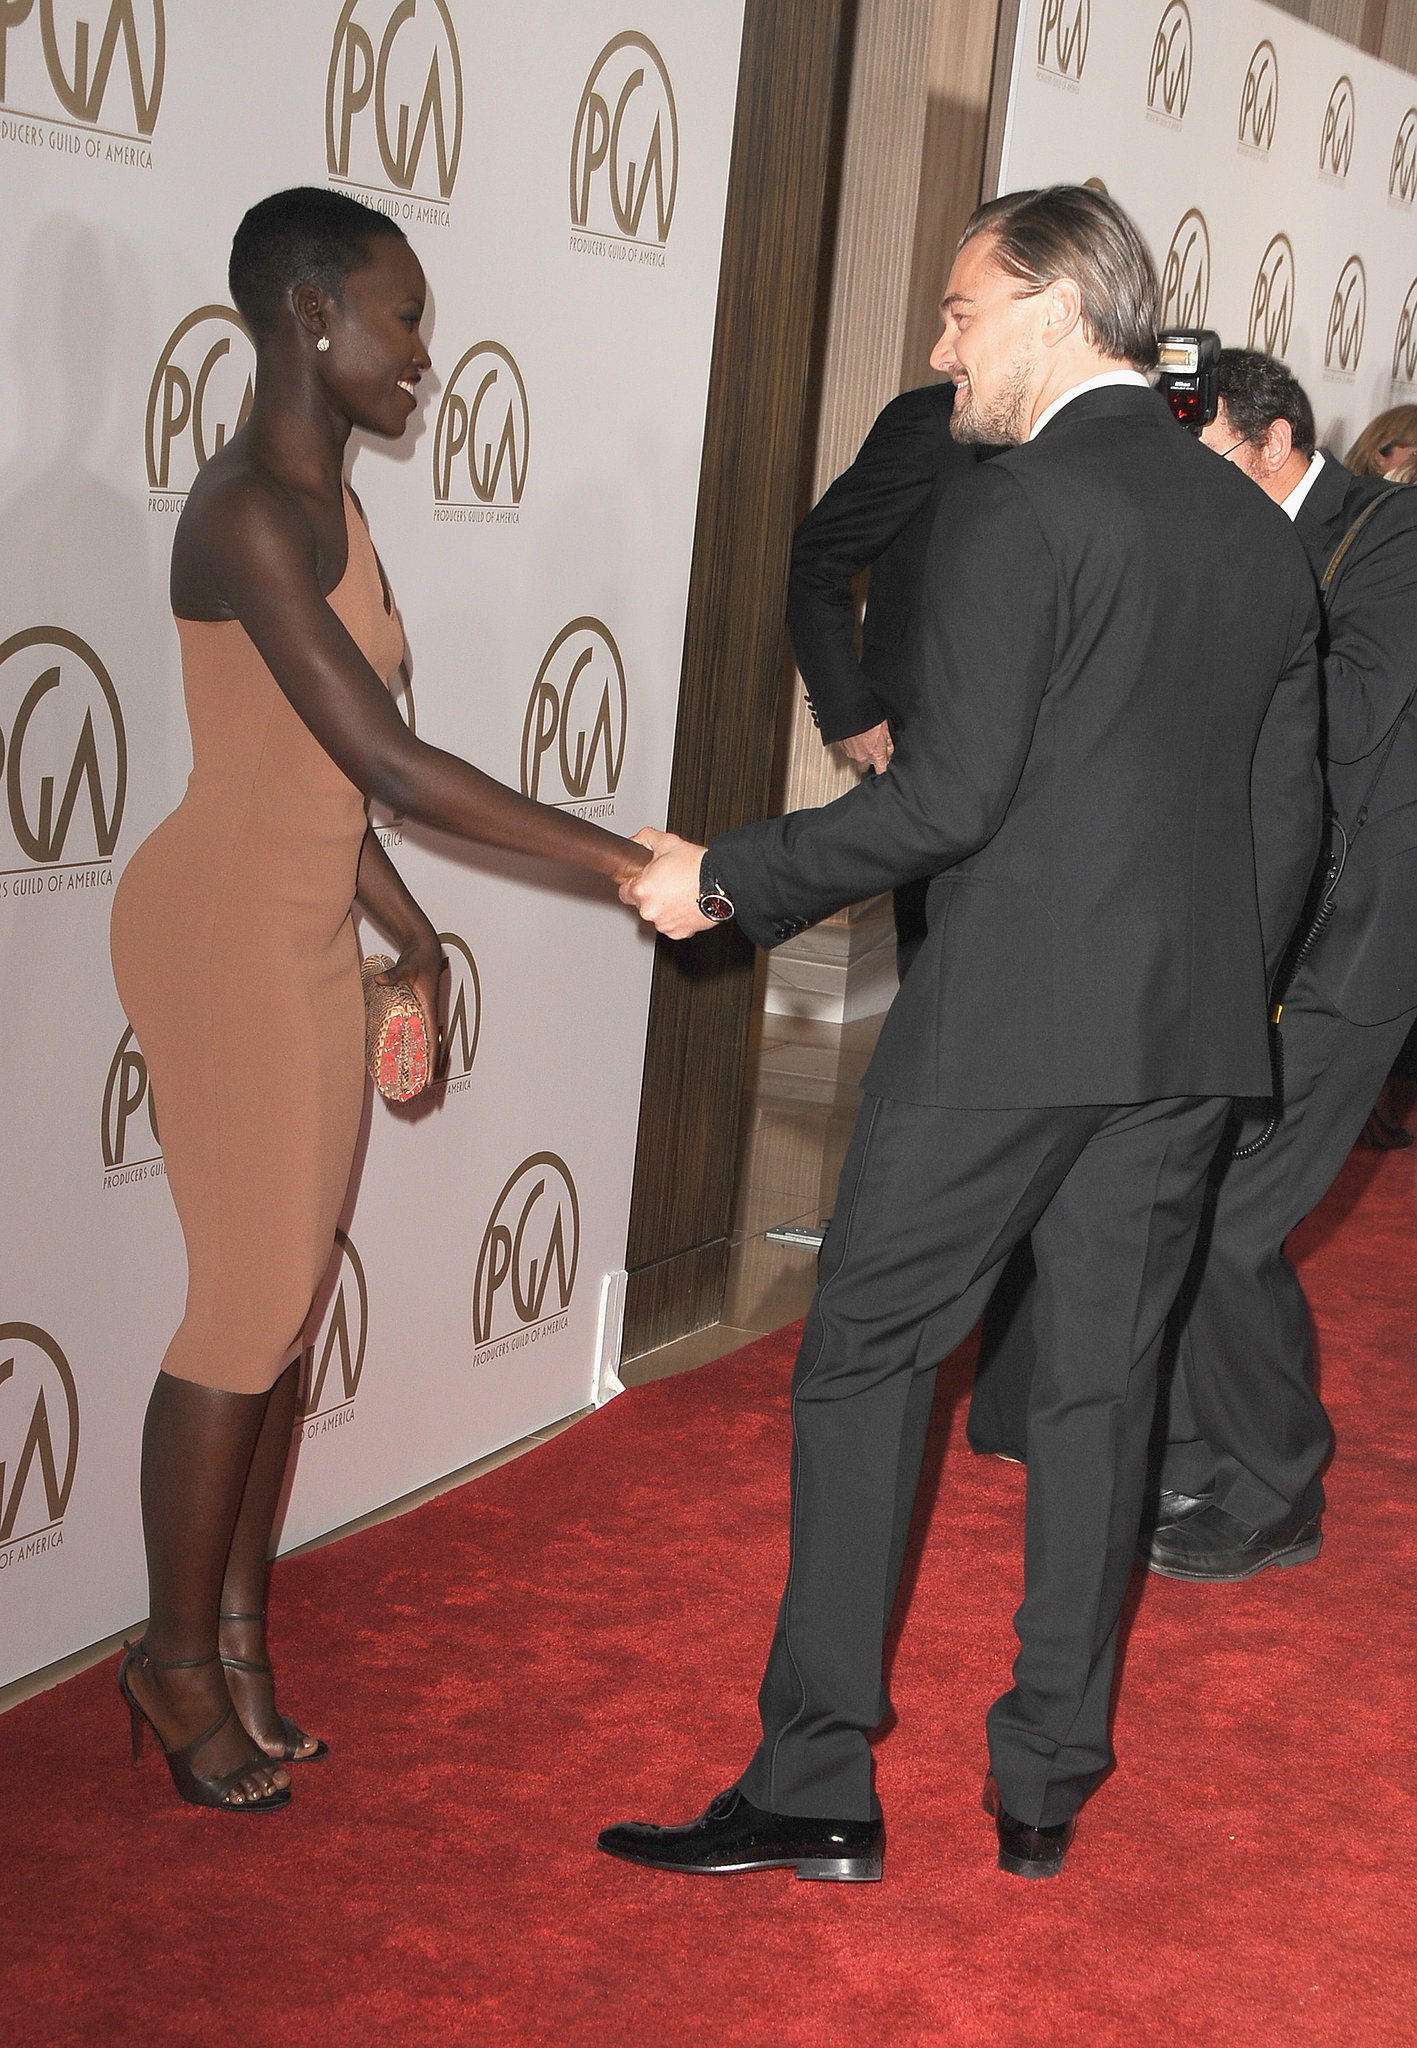 She shared a cute moment with Leonardo DiCaprio on the red carpet at the Producers Guild Awards.